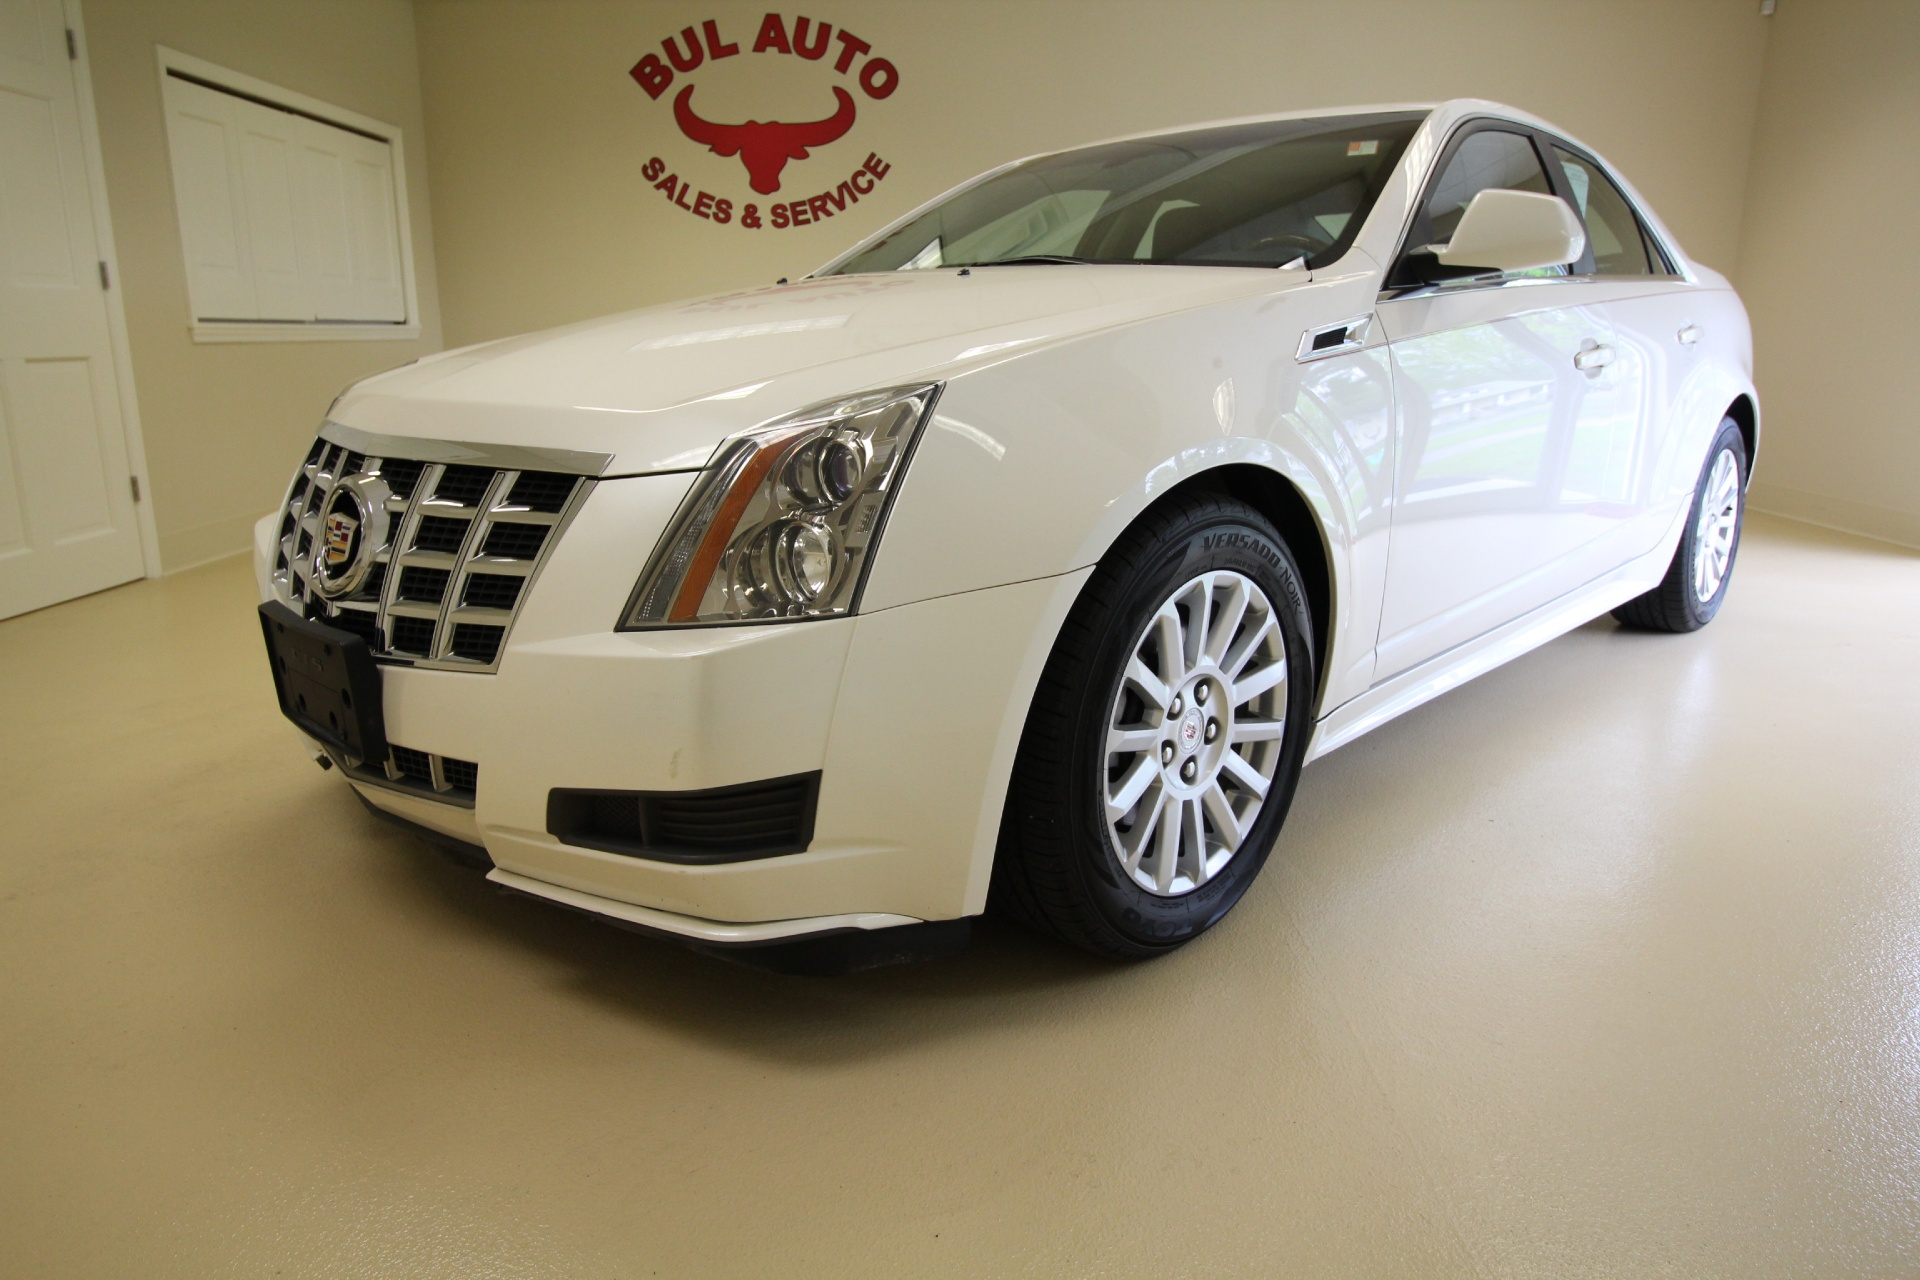 Used Cars with Sunroof for Sale Near Me Inspirational 2012 Cadillac Cts 3 0l Luxury Awd Super Clean 1 Owner Panoramic